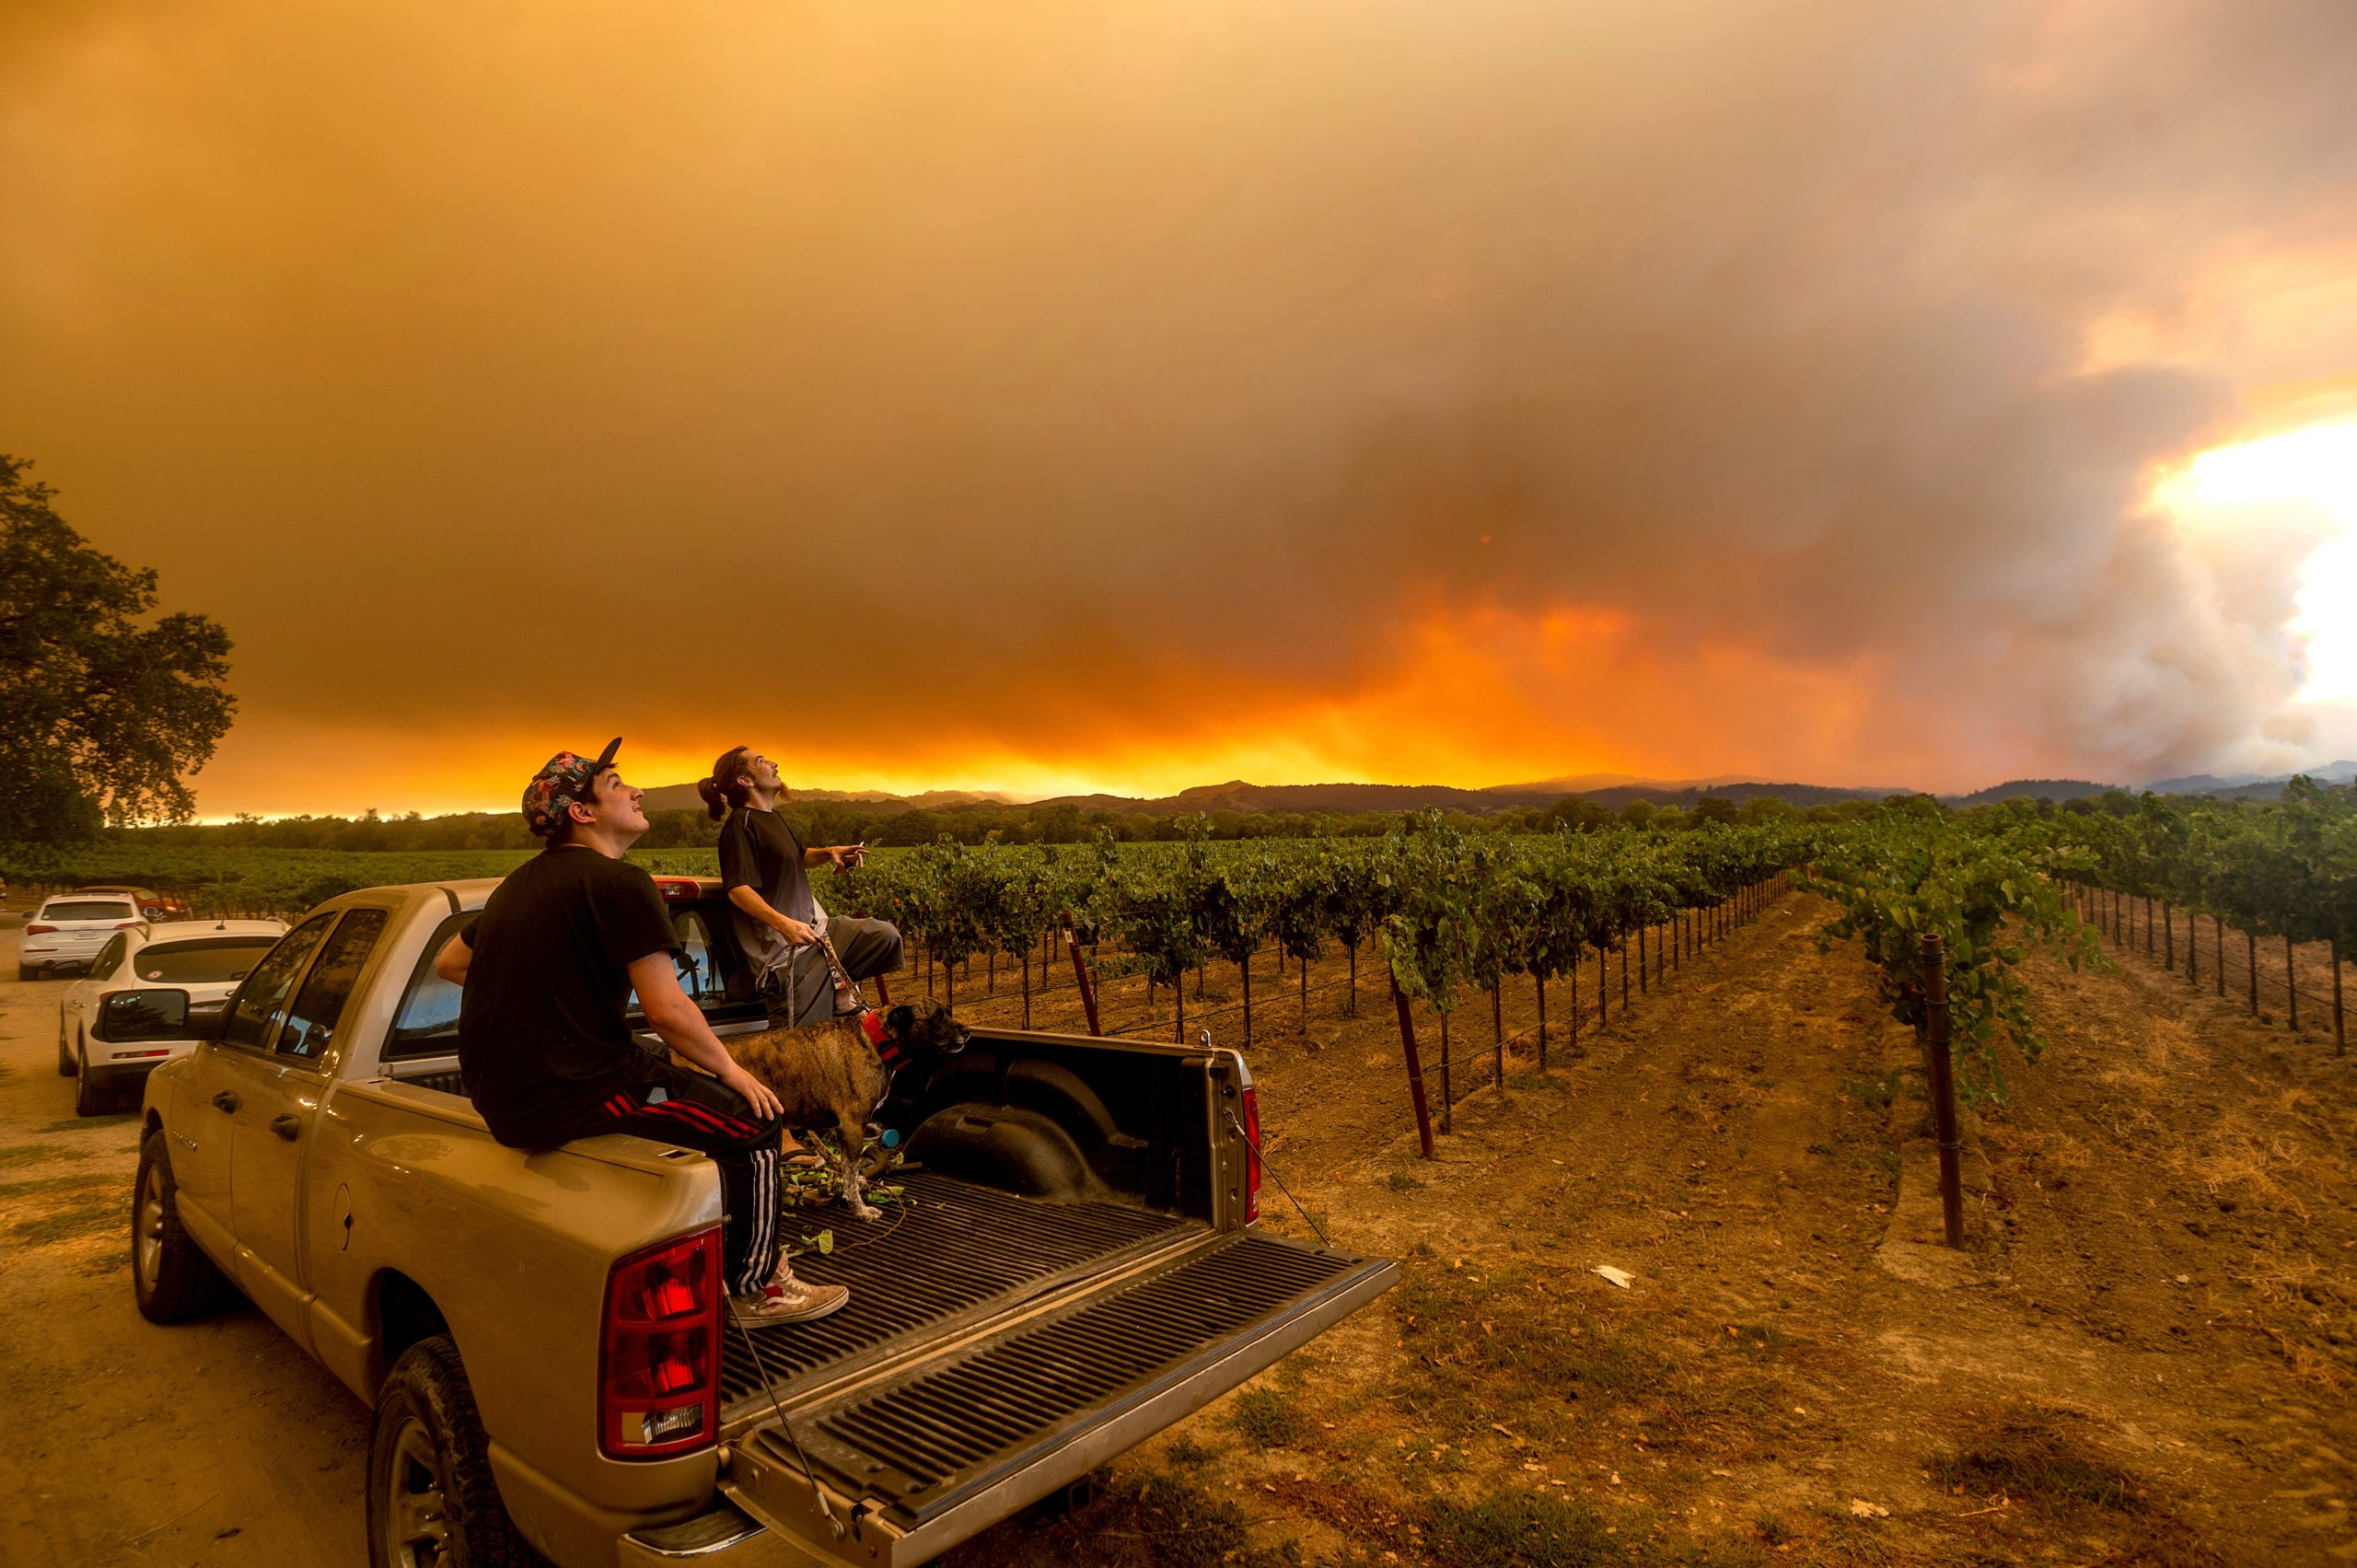 Locals watch as a plume of red smoke from the wildfires rises in the sky above Healdsburg, California